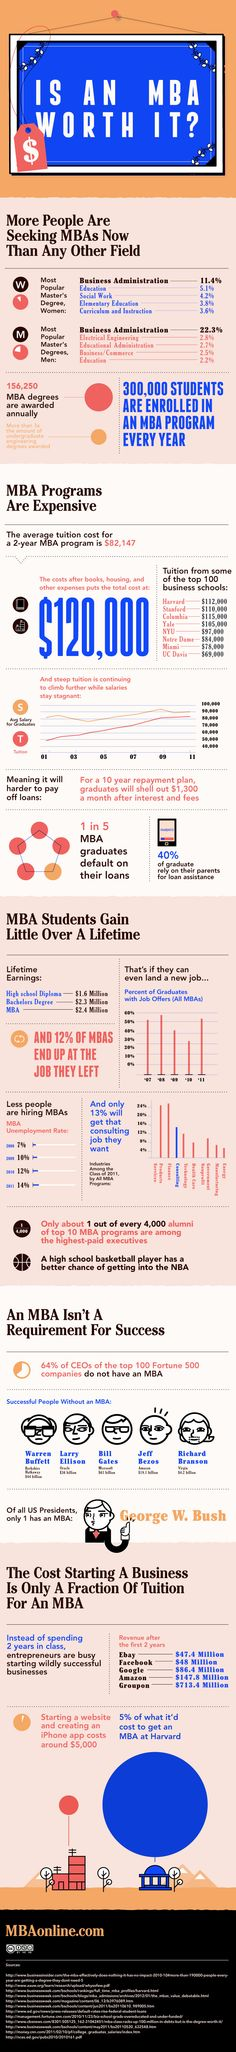 Is an MBA worth it? Sure it is! You have the opportunity to build your network, which can be very valuable if you do it right.